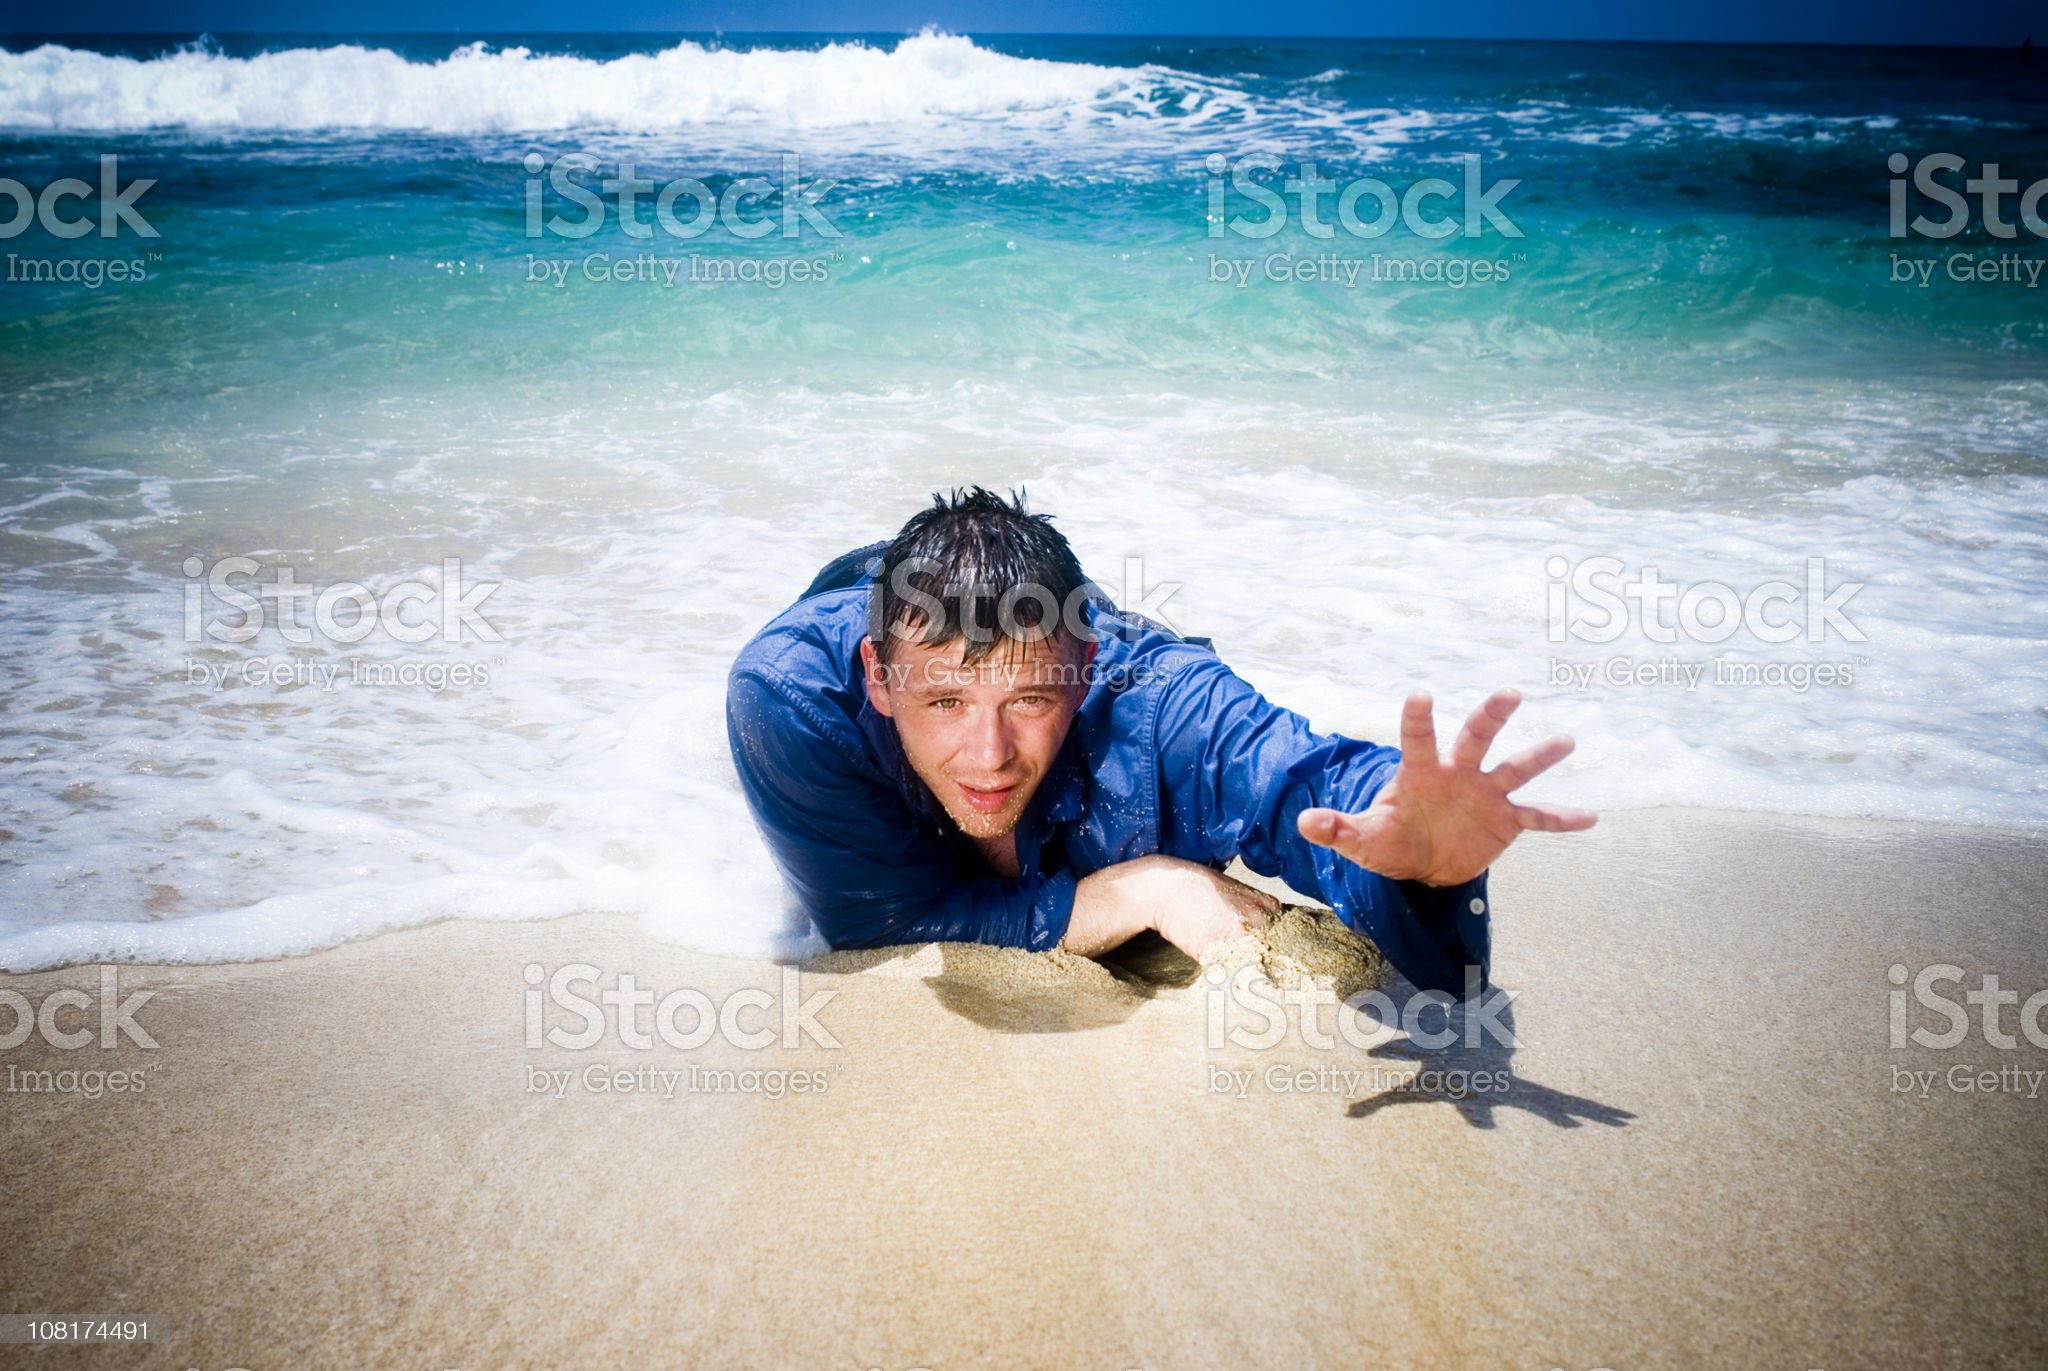 Man Shipwrecked, Reaching For Help royalty-free stock photo